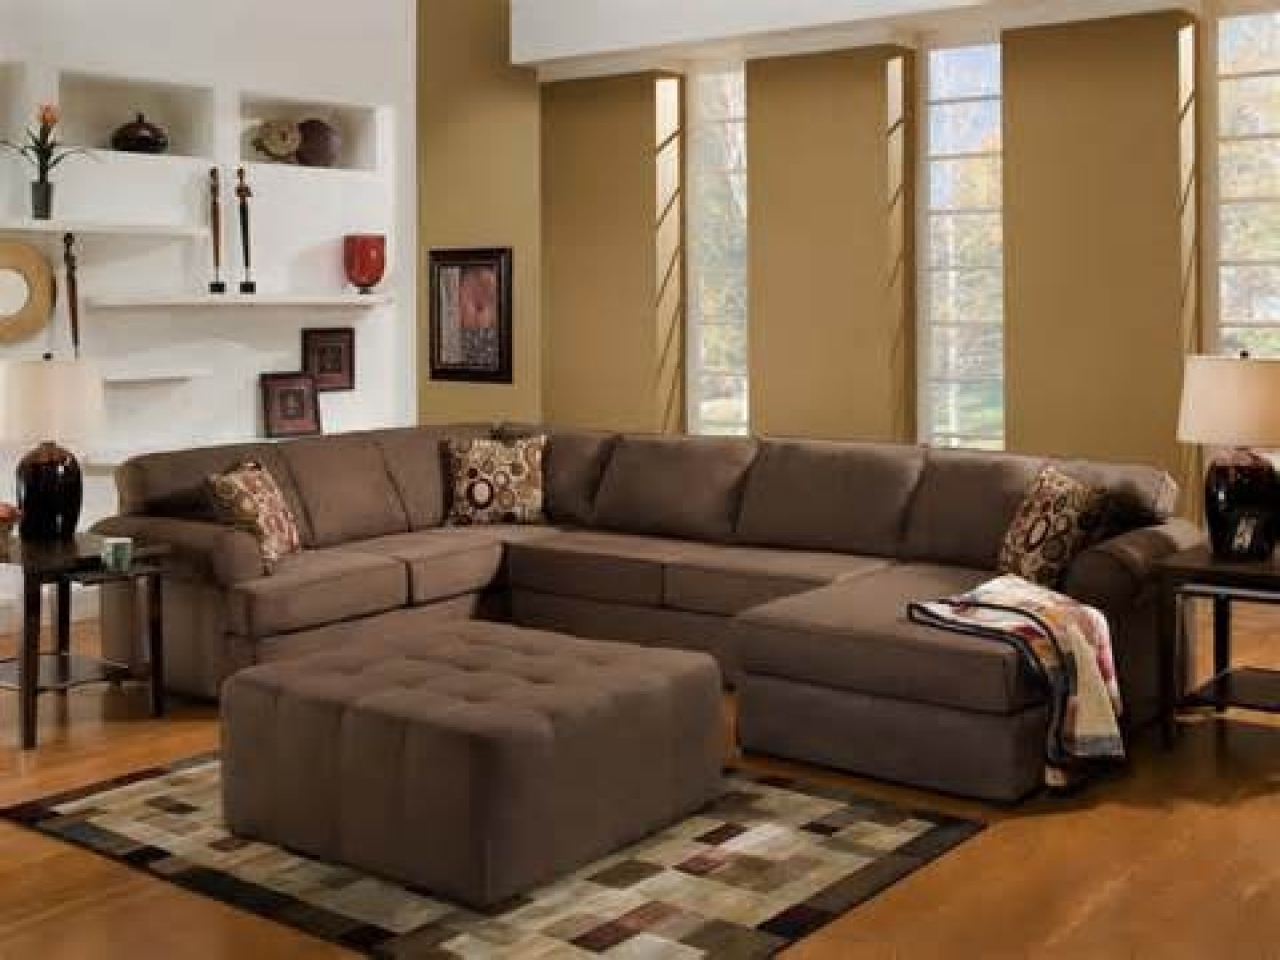 2019 Sectional Sofas At Big Lots Pertaining To Costco Furniture Sectional, Big Lots Furniture Sofa Big Lots (Gallery 18 of 20)